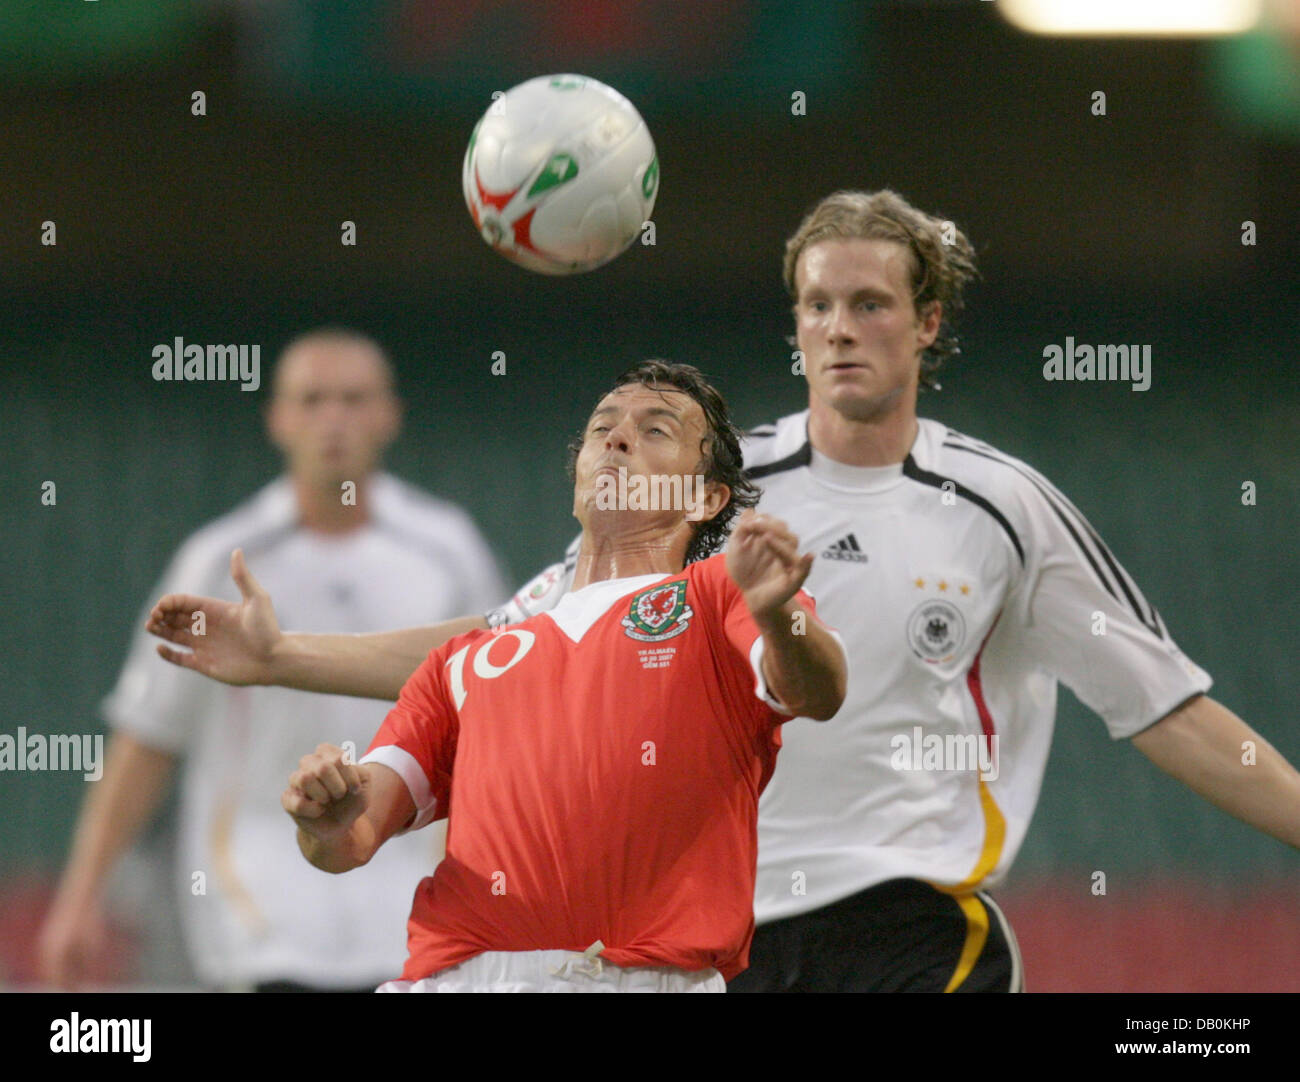 Rasen Jansen Sports Spo Soccer United Kingdom Stock Photos Sports Spo Soccer